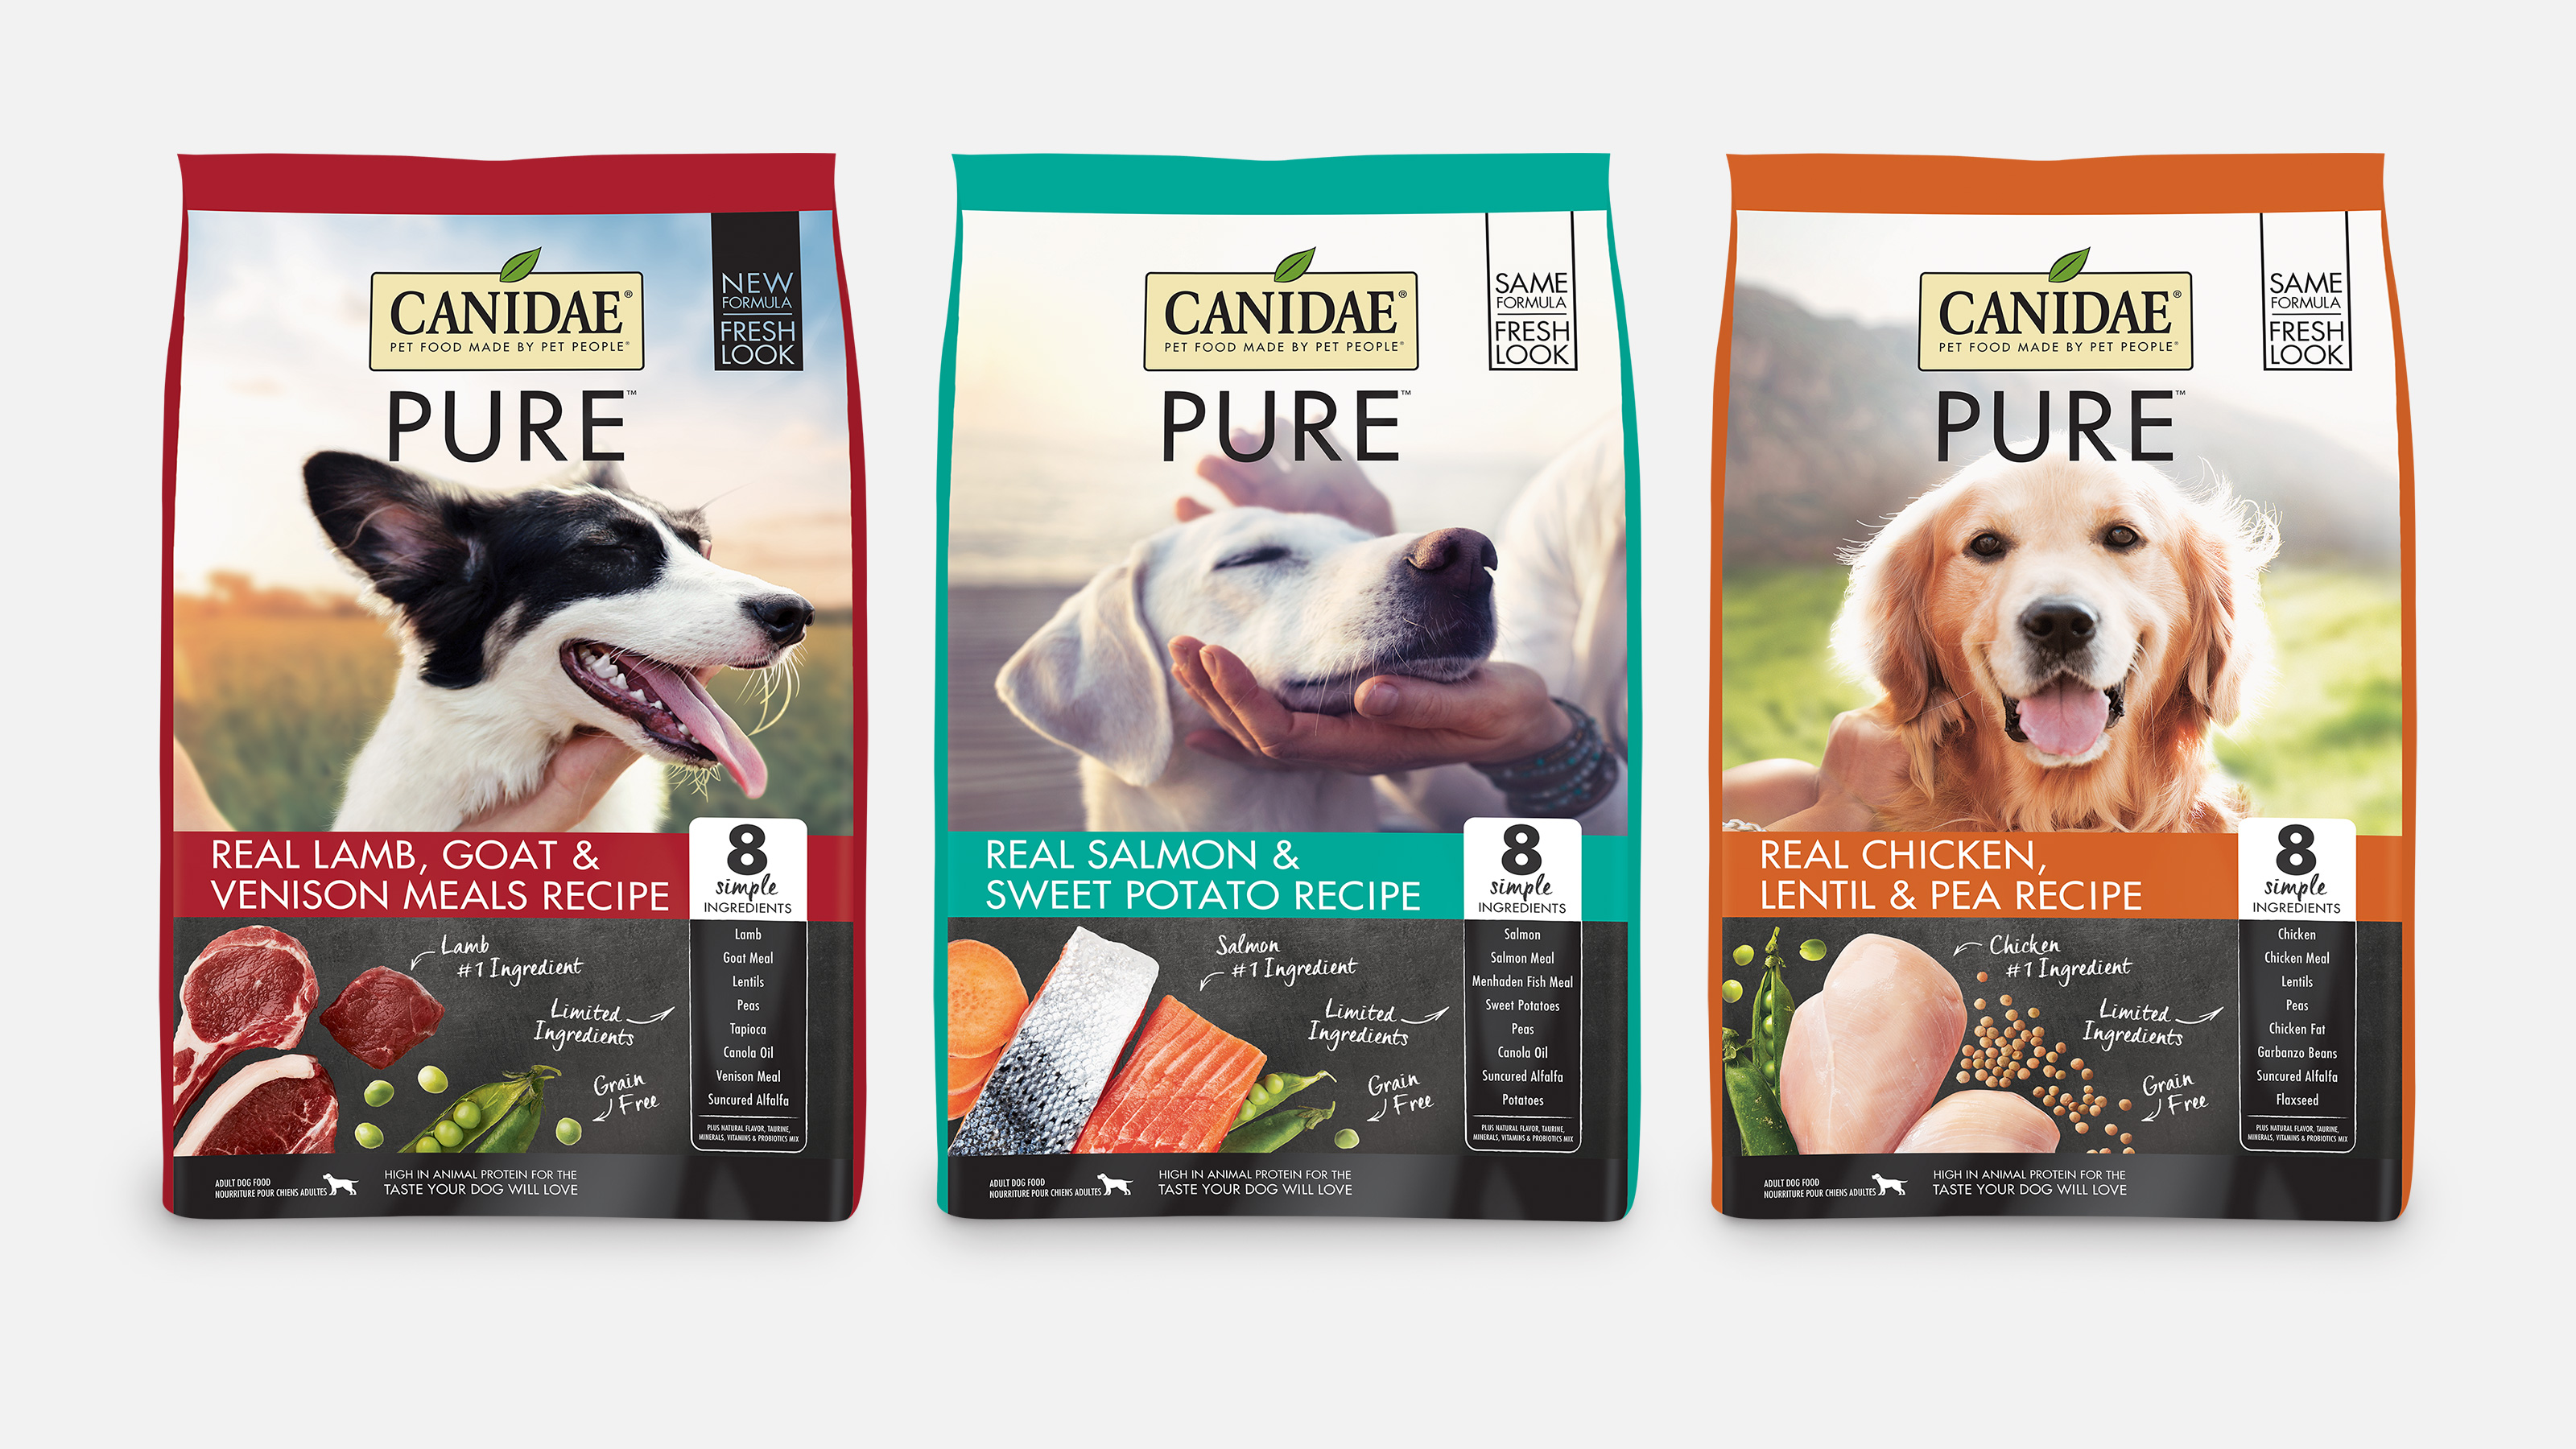 Packaging examples of CANIDAE Grain Free PURE dry dog food recipes